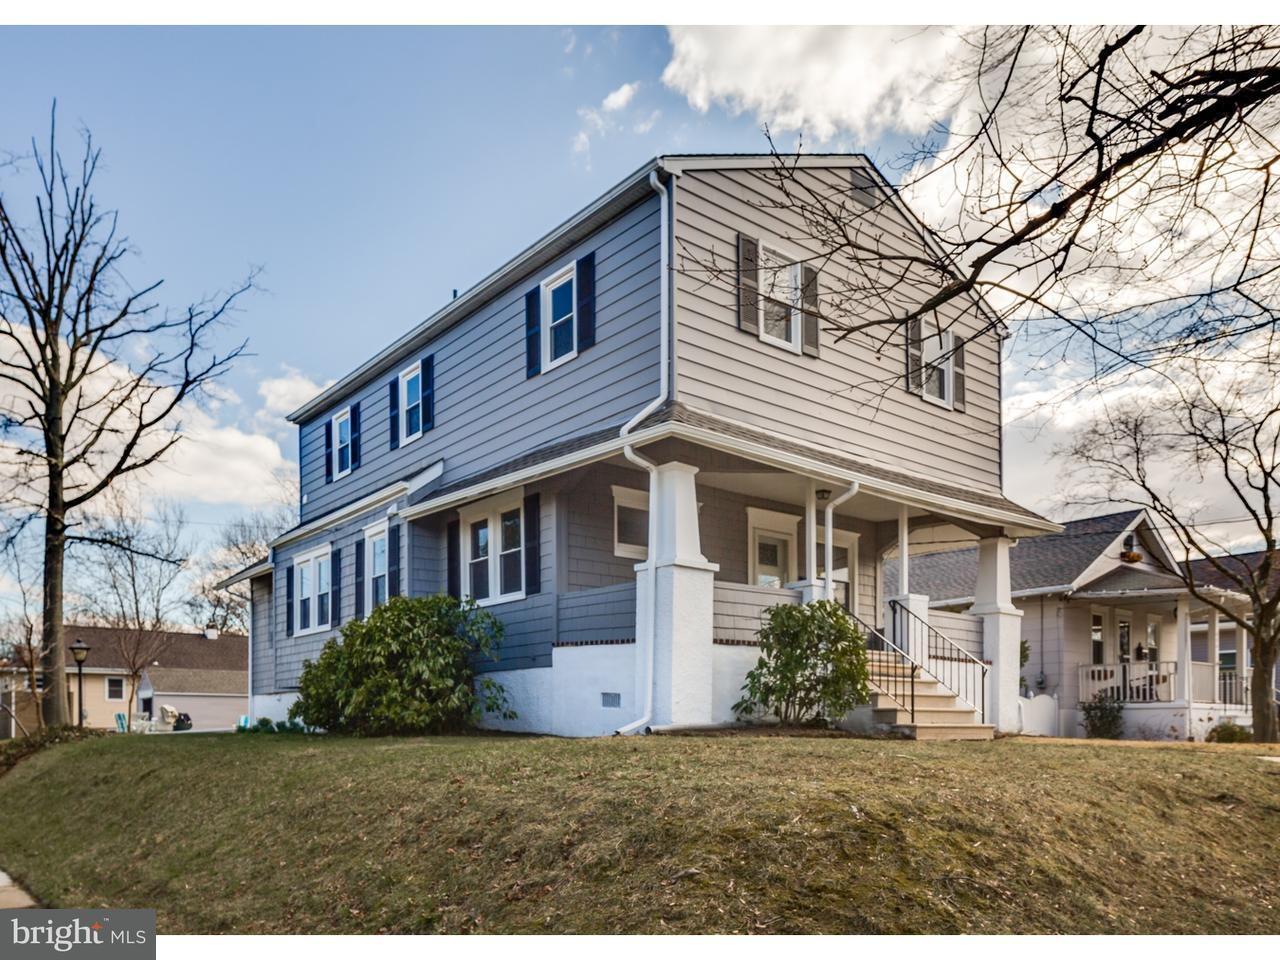 Single Family Home for Sale at 600 W GRAISBURY Avenue Audubon, New Jersey 08106 United States